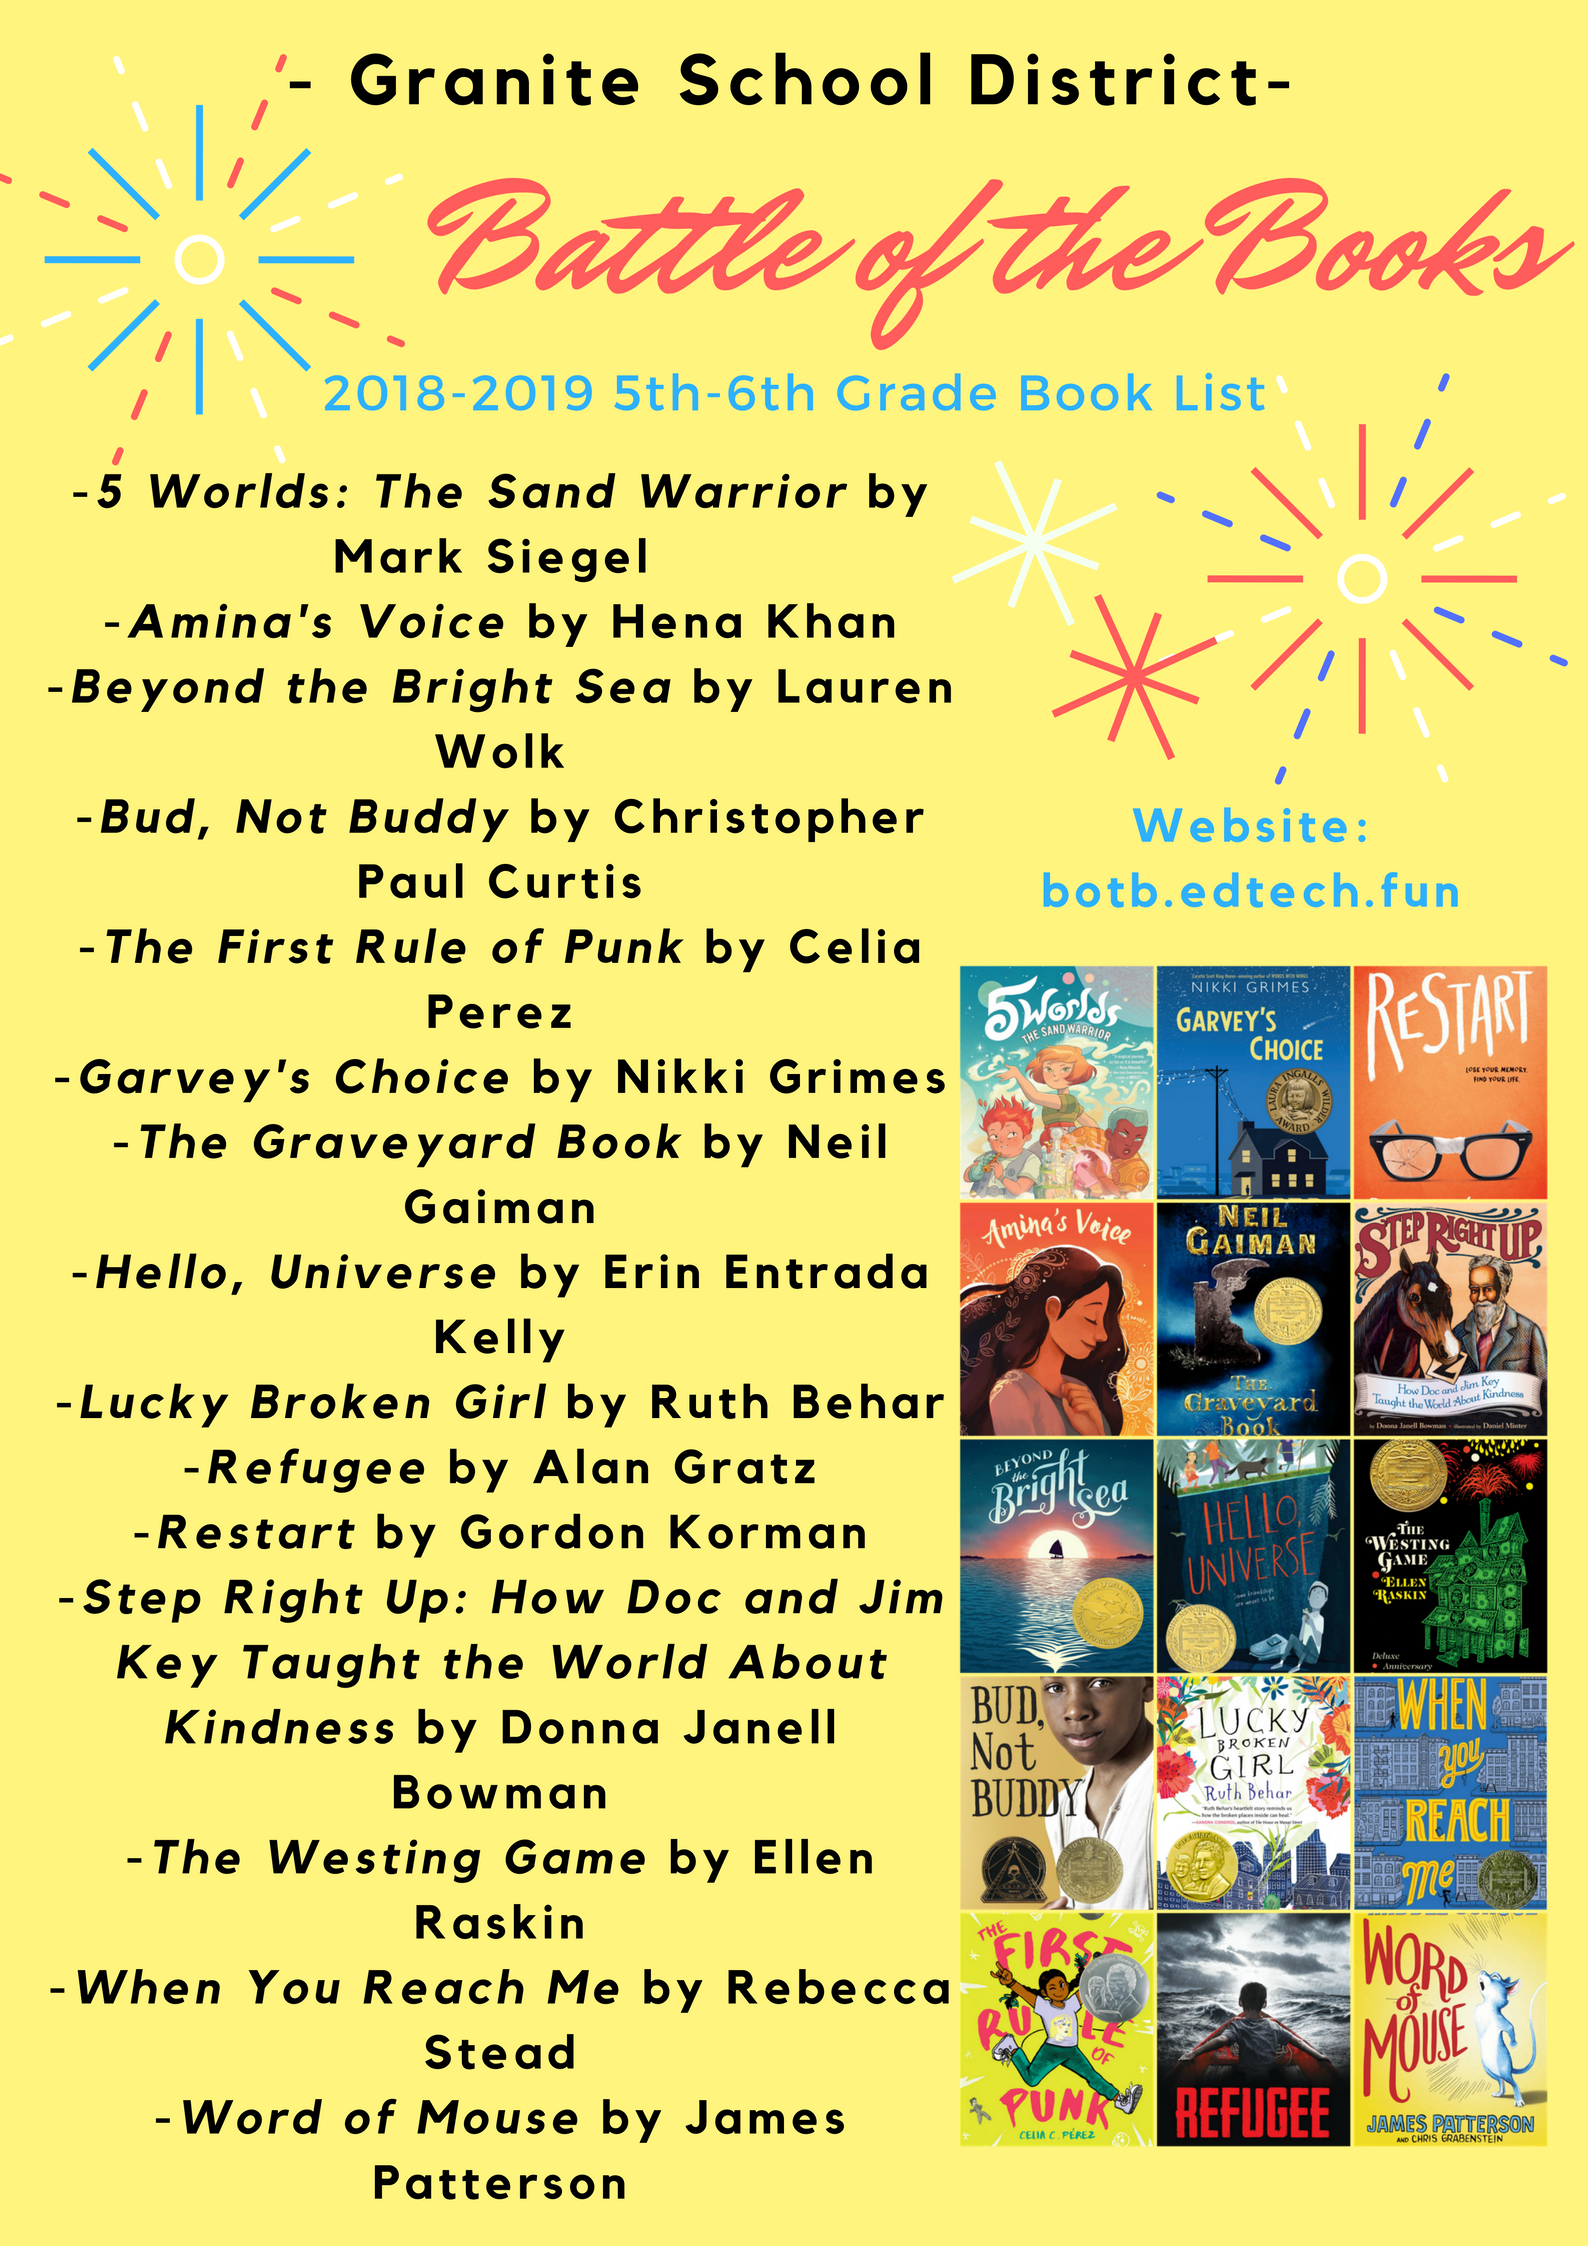 2018 2019 Granite Battle Of The Books 5th 6th Grade Book List Book